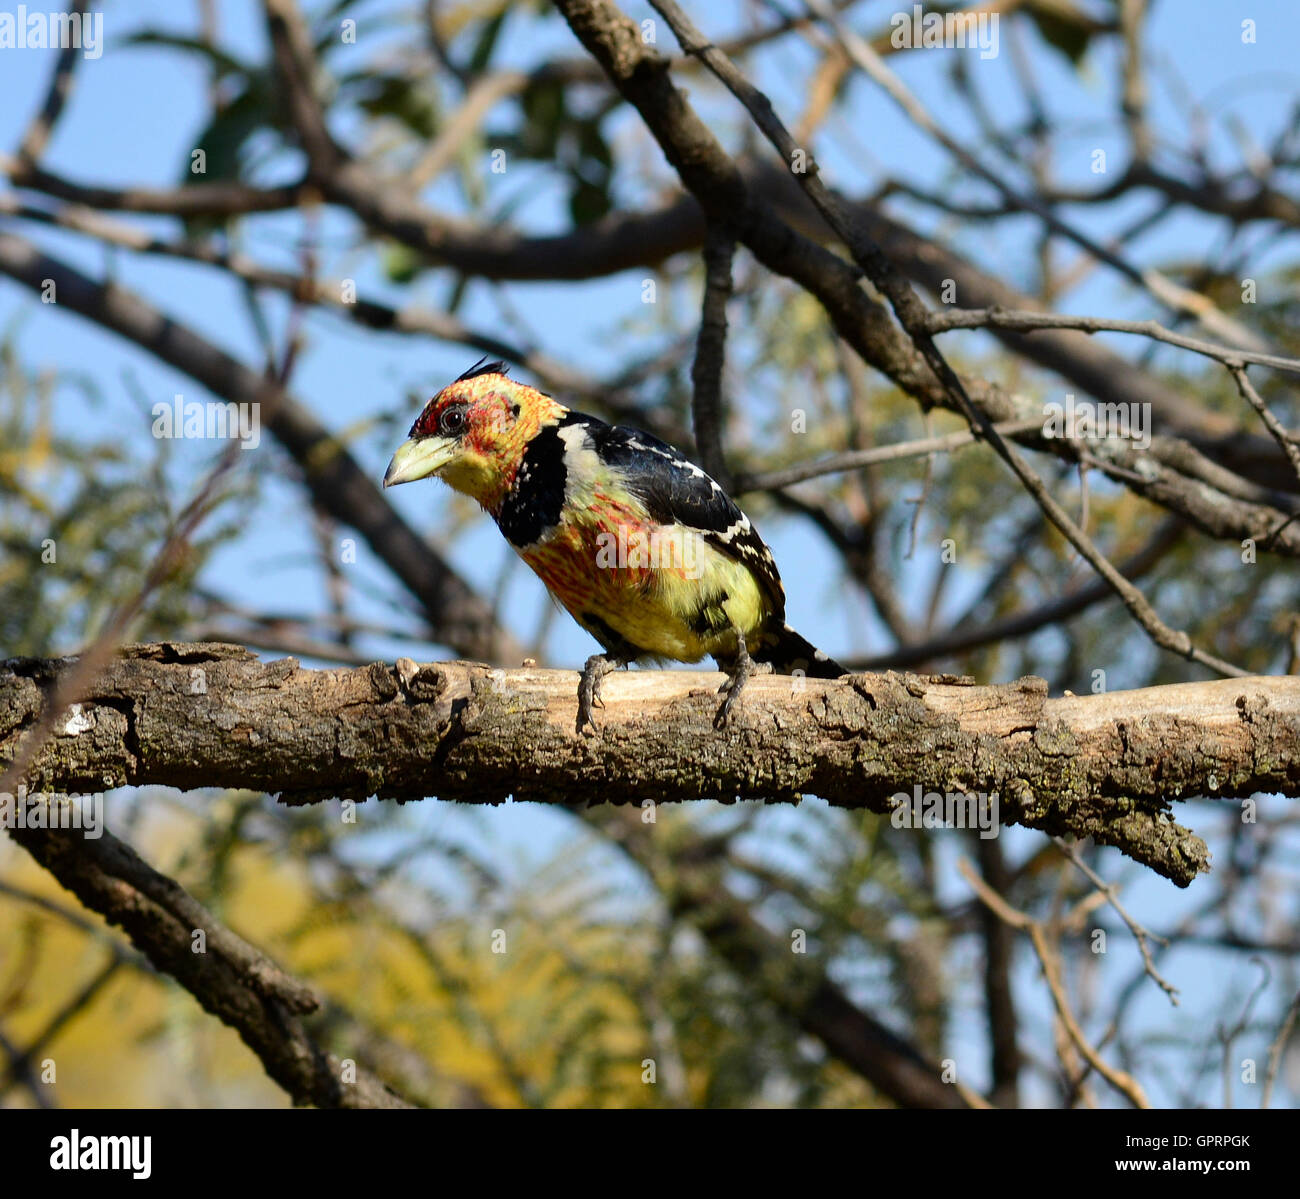 Crested barbet (Trachyphonus vaillantii) male bird. Songbirds singing in duets. Fruit eating bird colorful yellow - Stock Image